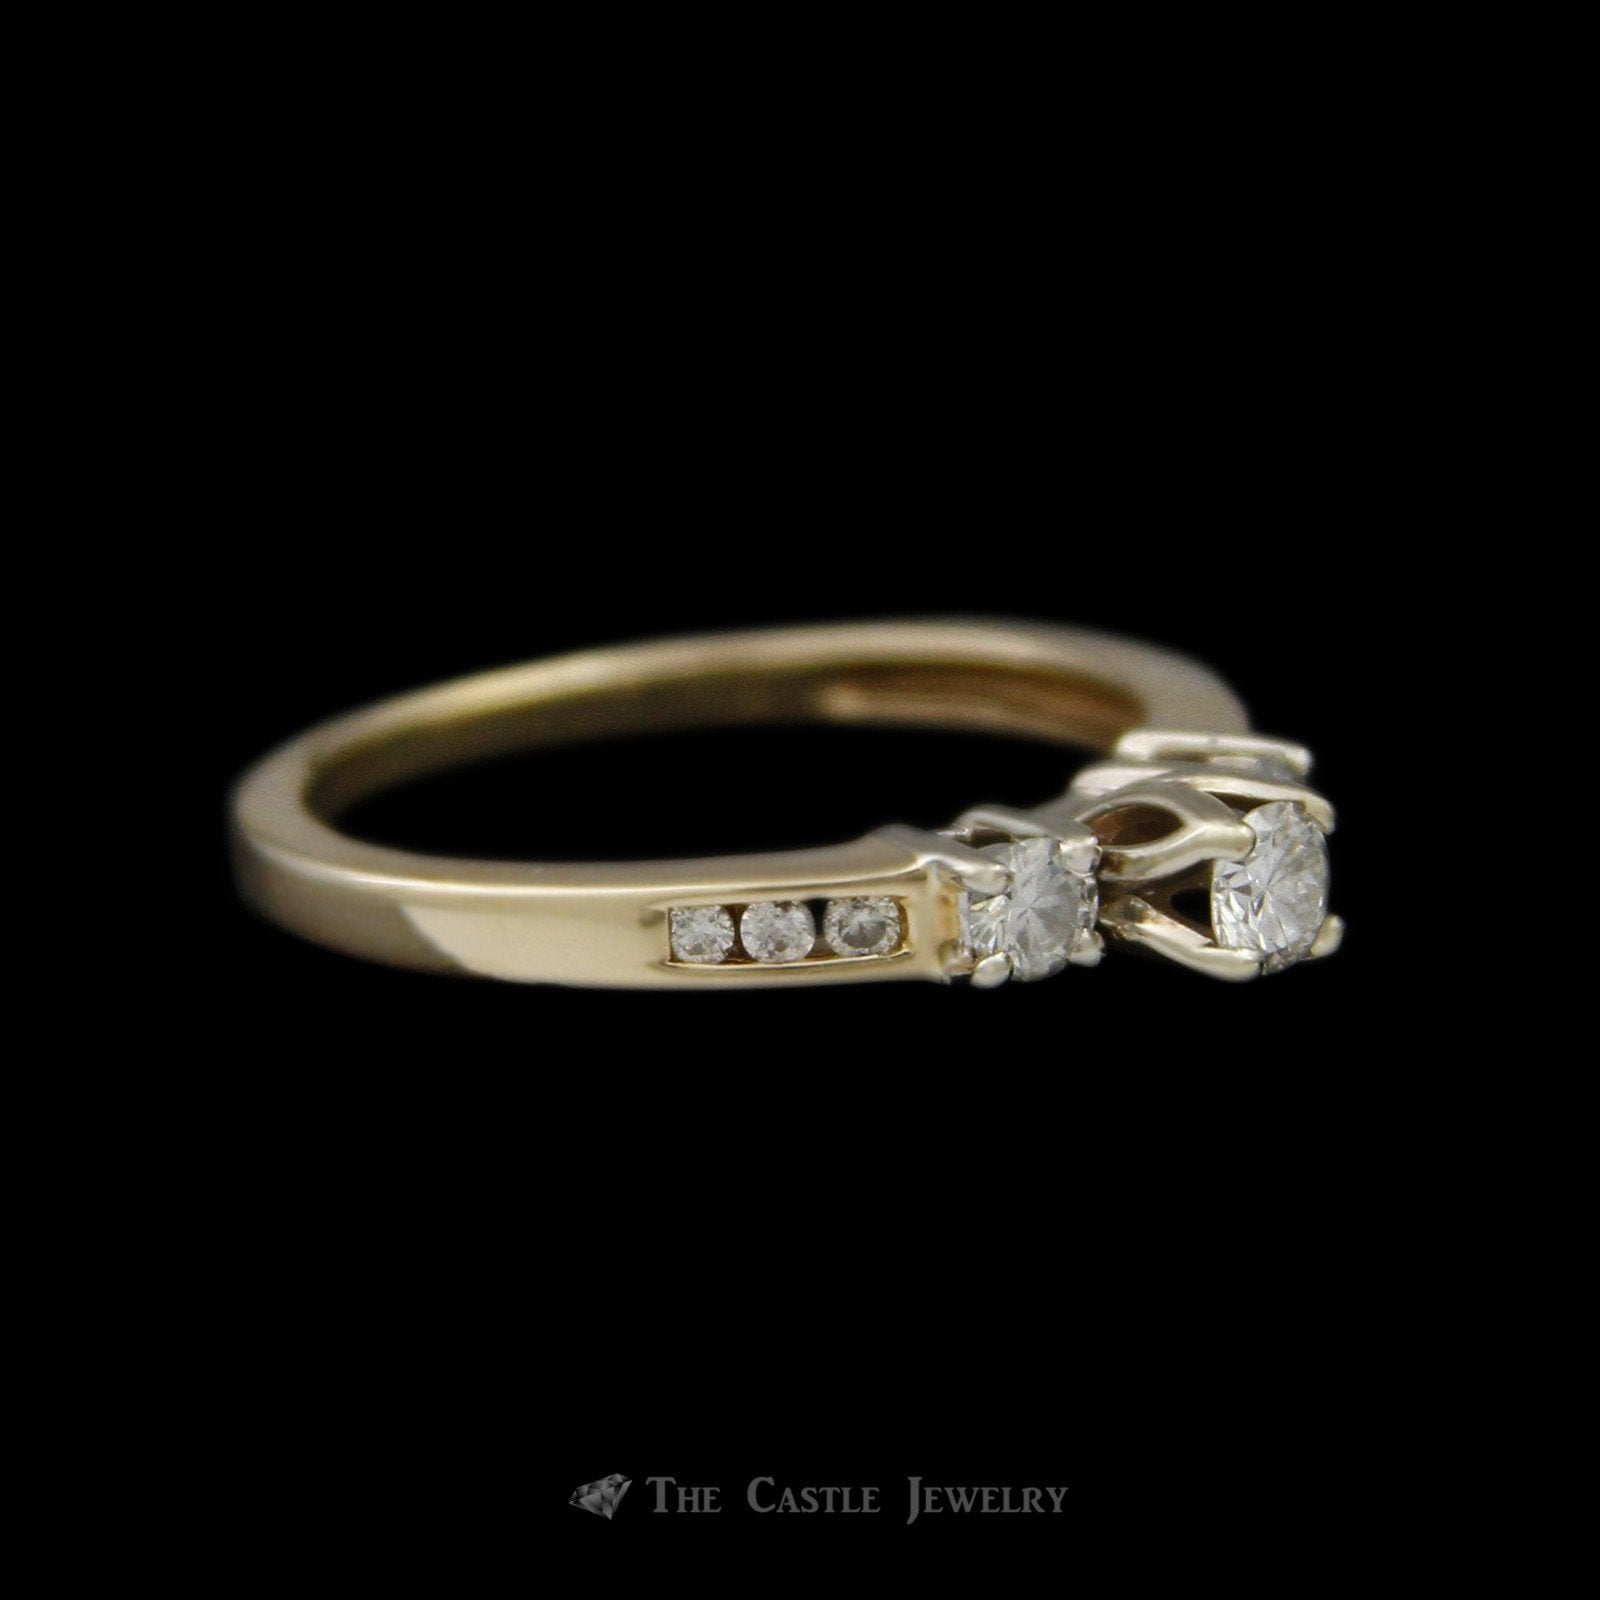 Round Brilliant Cut Diamond Bridal Ring with Round Diamond Sides Crafted in 14K Yellow Gold-2